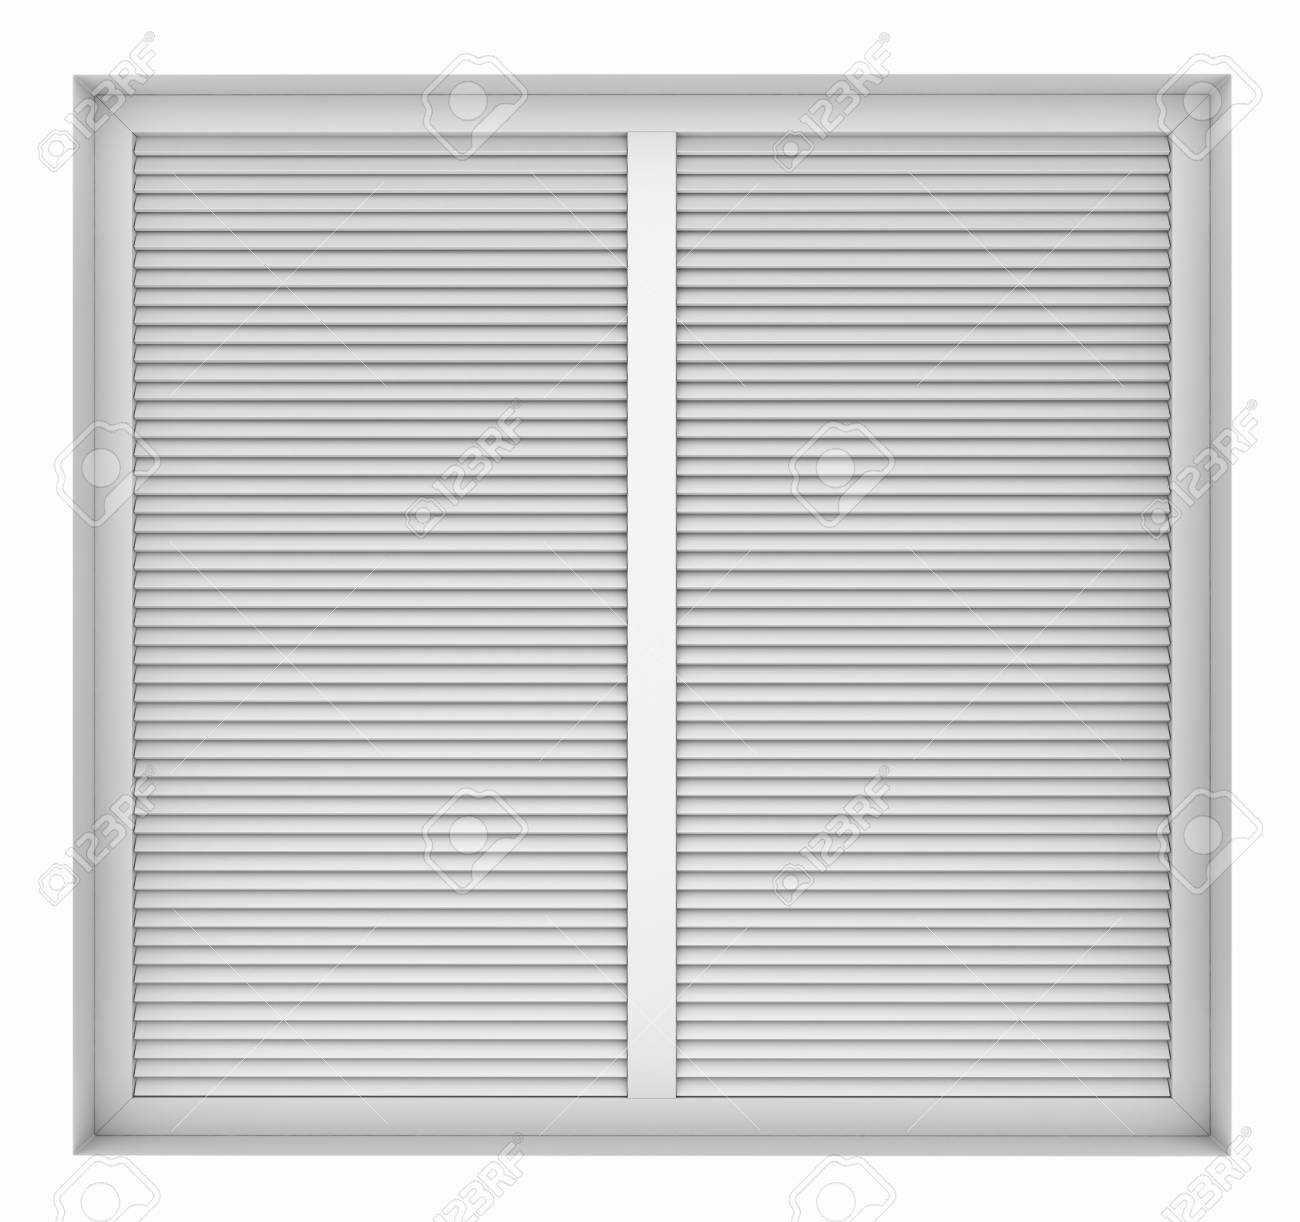 plastic window blinds cheap 3d render of plastic window frame with external blinds isolated on white background stock photo render of plastic window frame with external blinds isolated